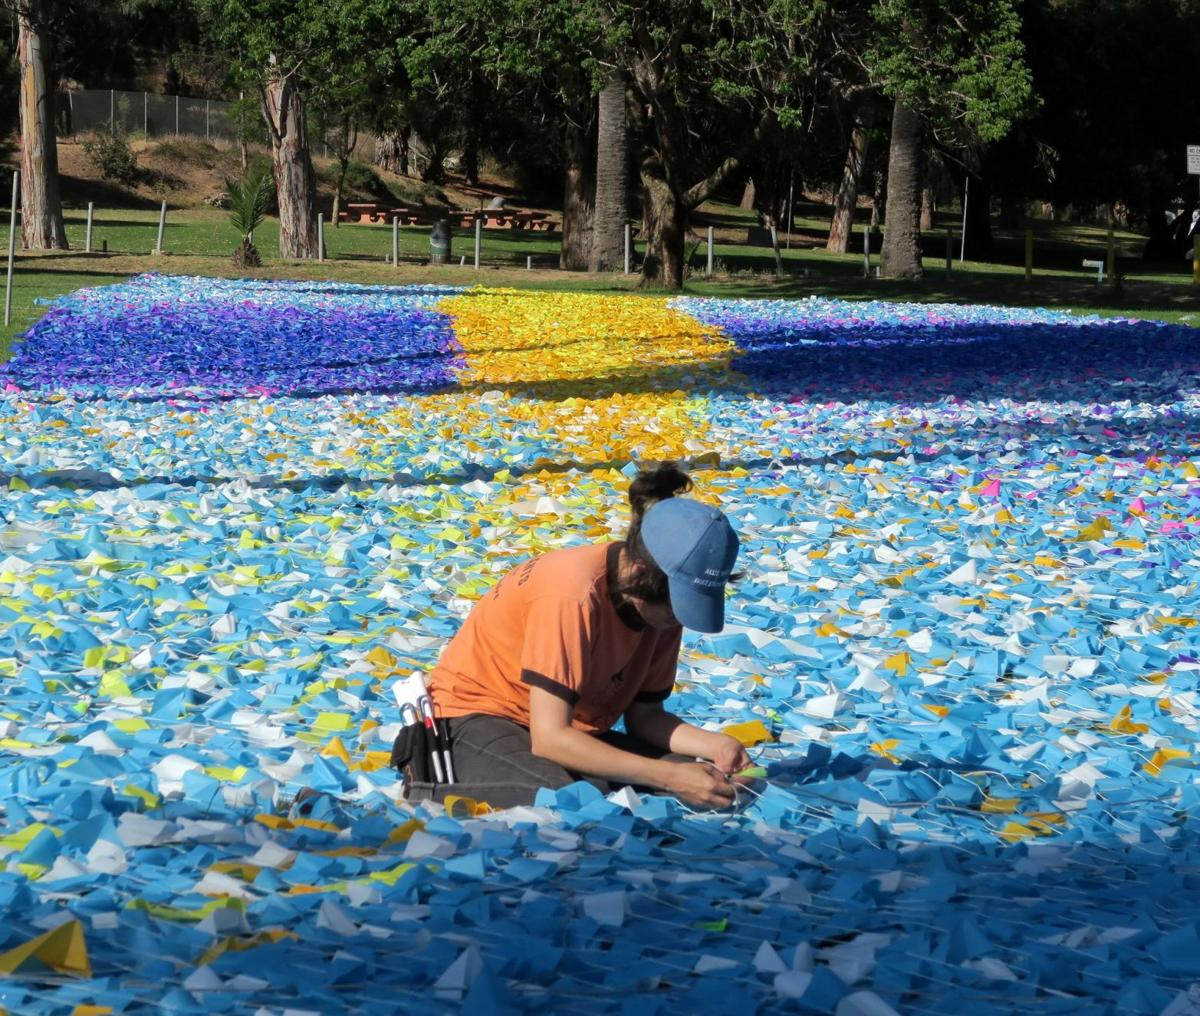 visions in motion installation elysian park jesus sanchez 9-22-2019 4-17-21 PM.JPG